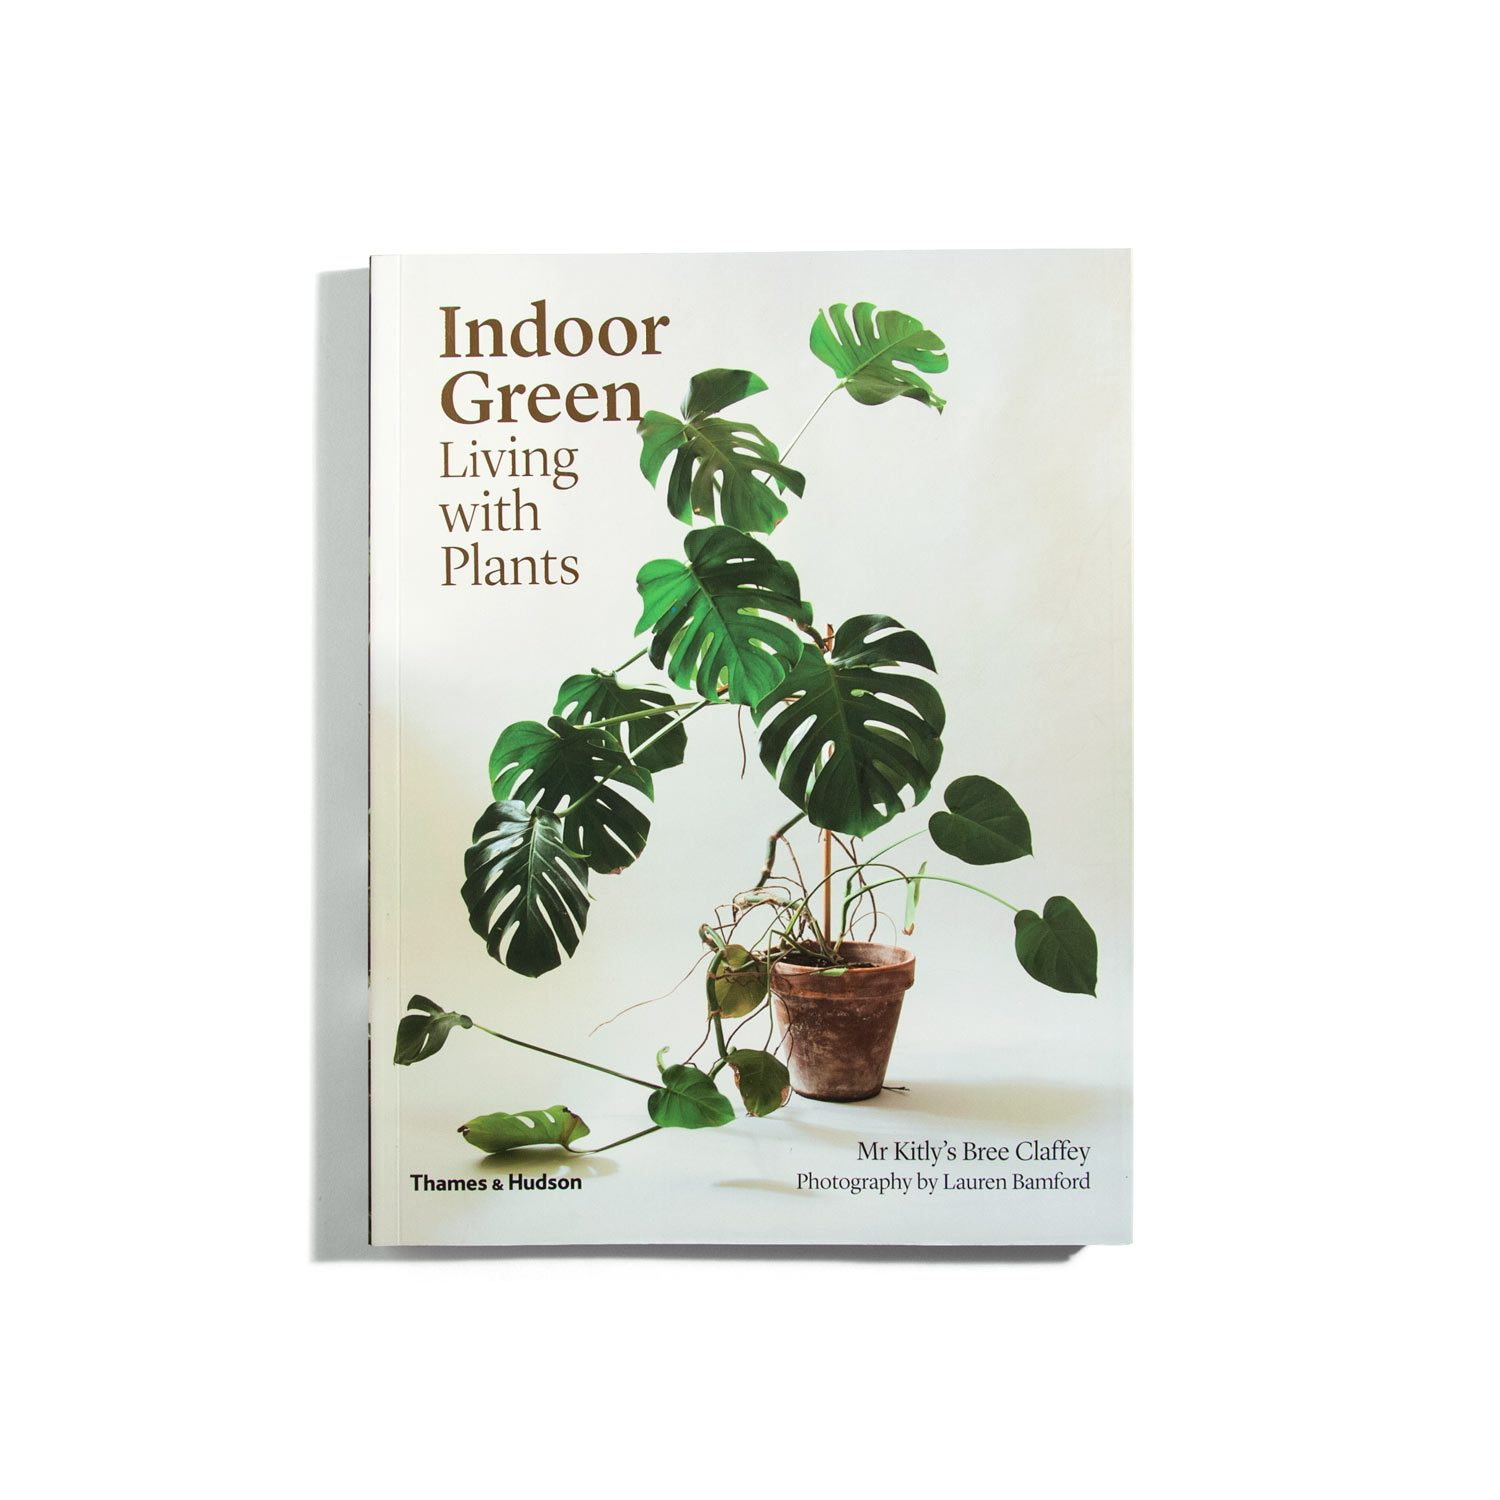 Indoor green living with plants